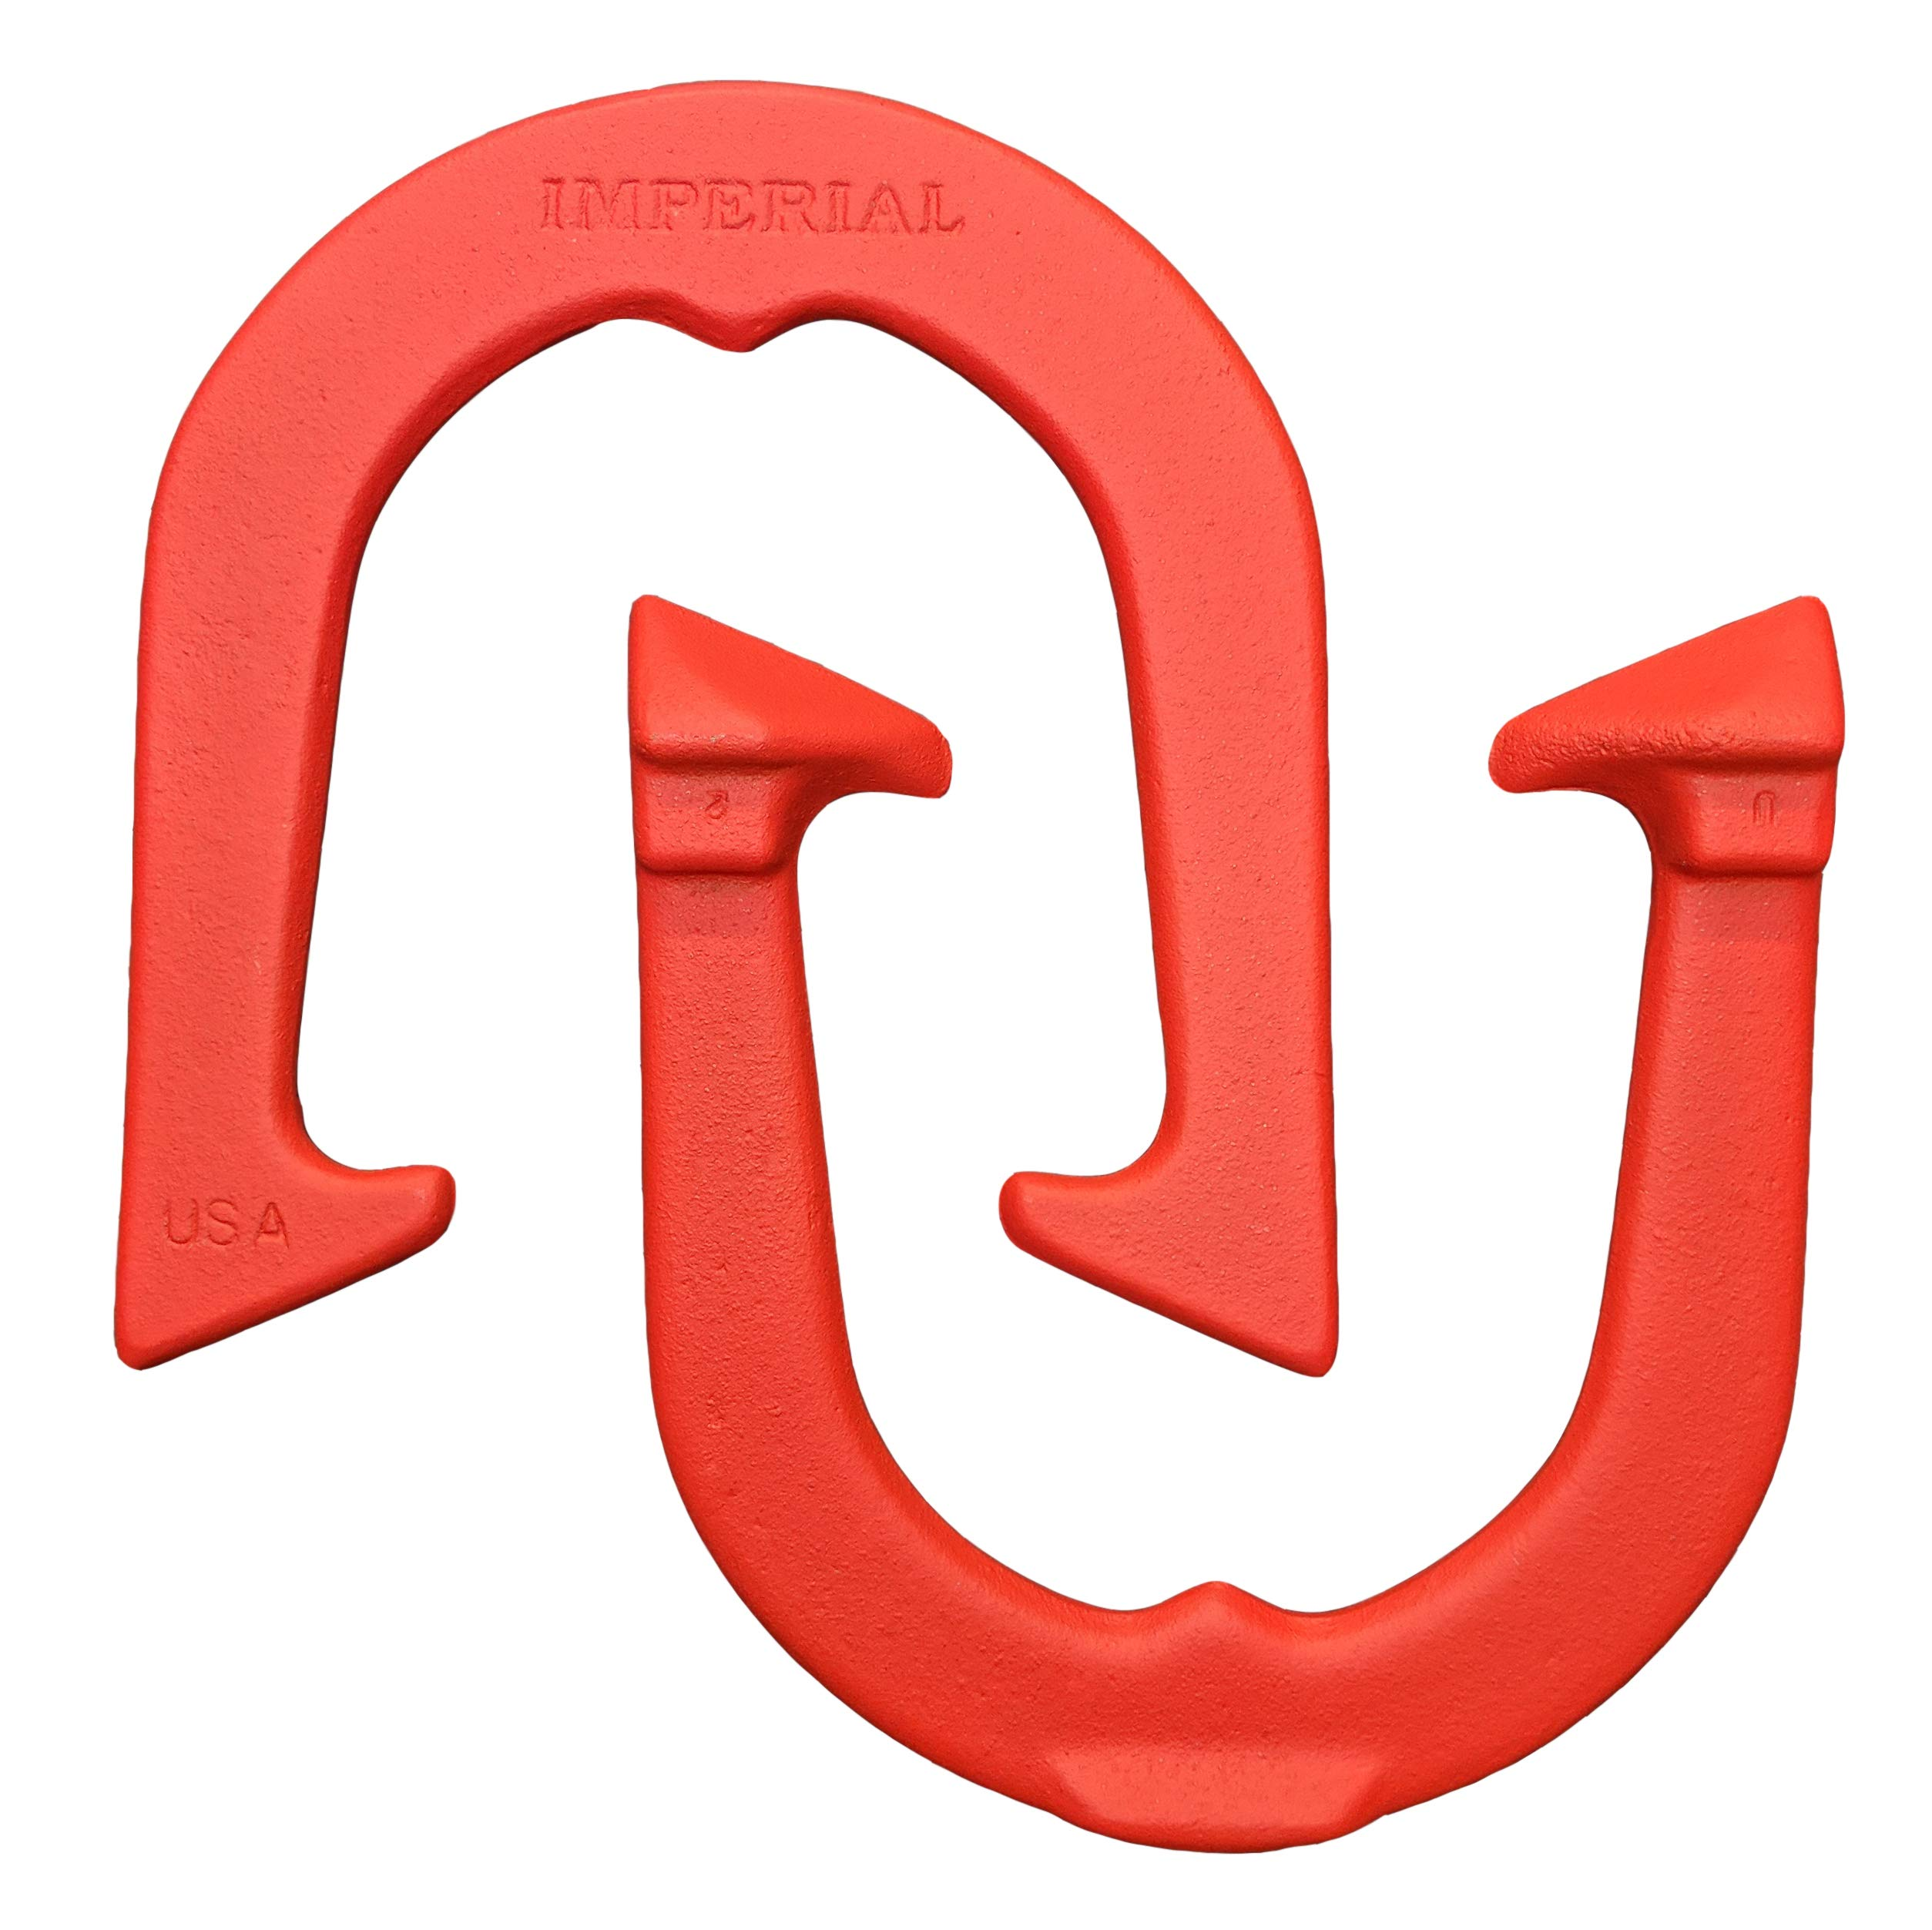 Imperial Professional Pitching Horseshoes- Made in USA! (Red- Single Pair (2 Shoes))